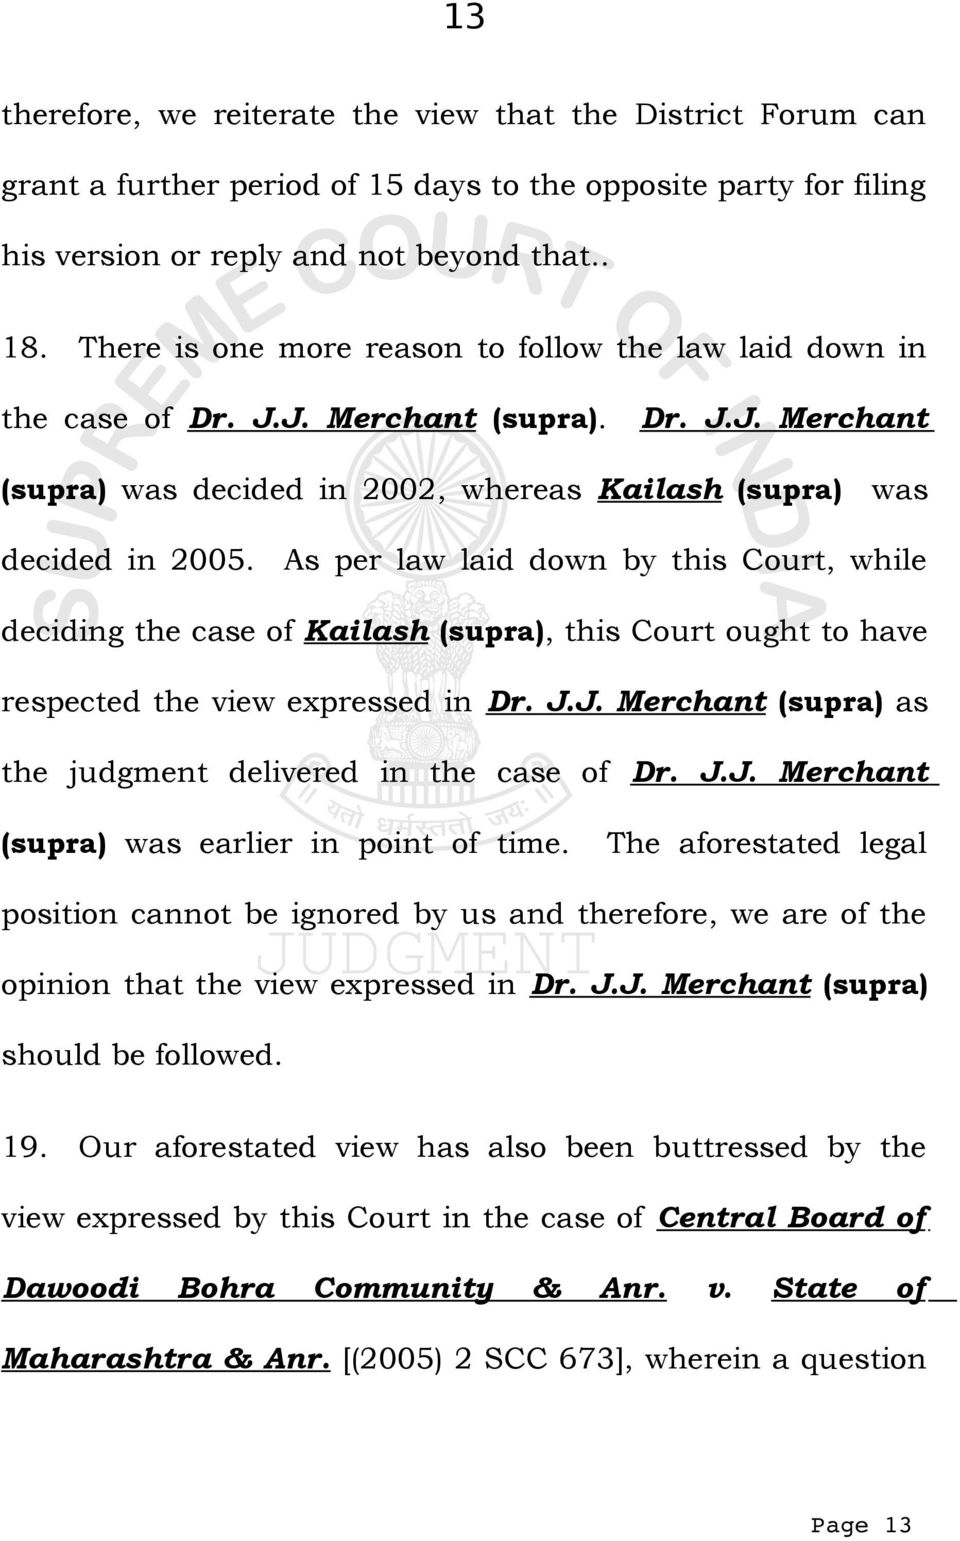 As per law laid down by this Court, while deciding the case of Kailash (supra), this Court ought to have respected the view expressed in Dr. J.